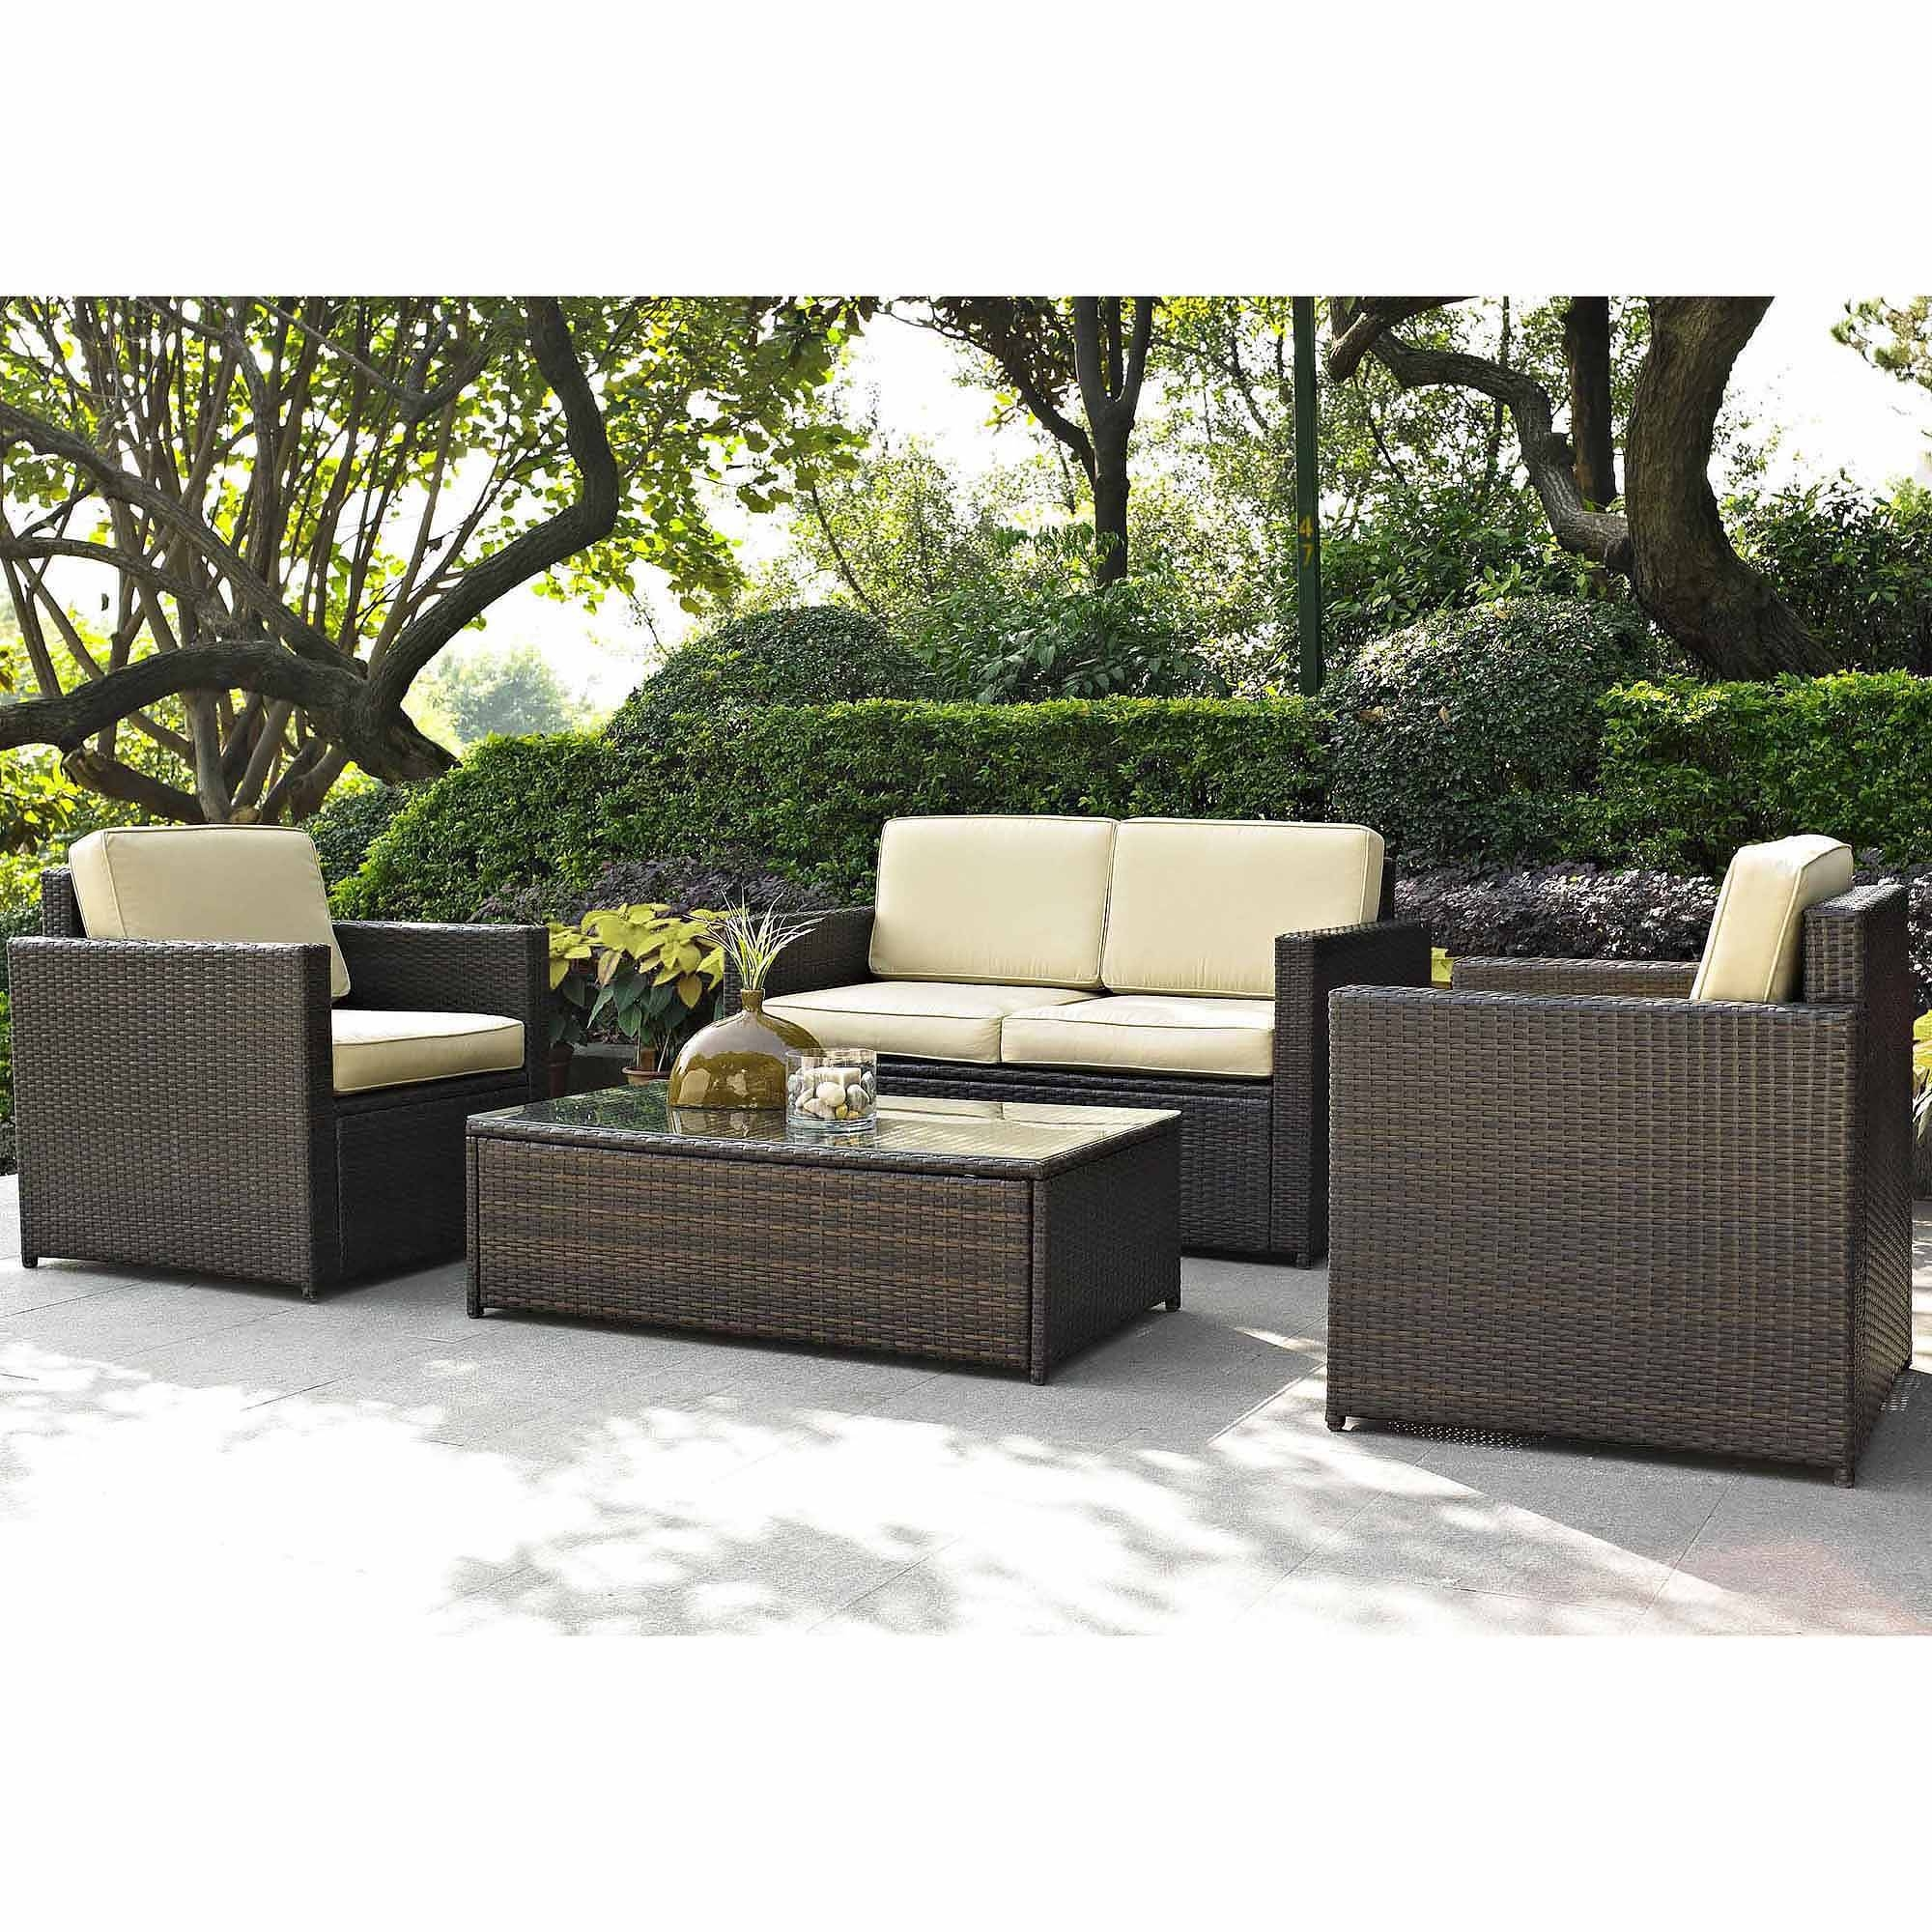 Best Choice Products Outdoor Garden Patio 4Pc Cushioned Seat Black pertaining to Sofa Table Chairs (Image 7 of 30)